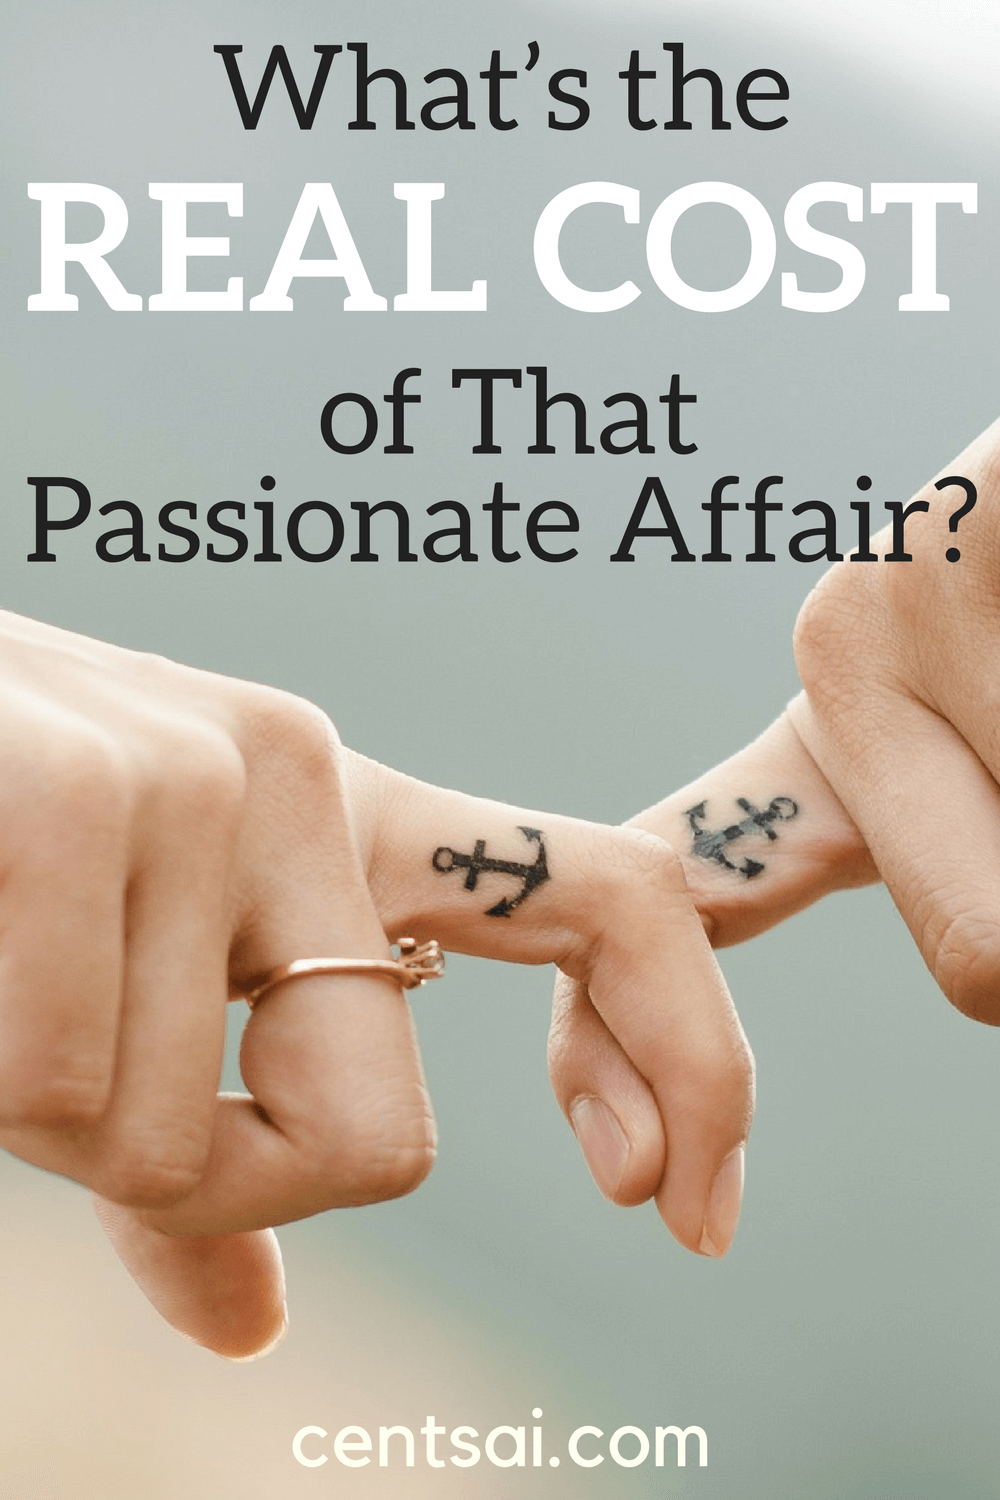 What's the Real Cost of That Passionate Affair